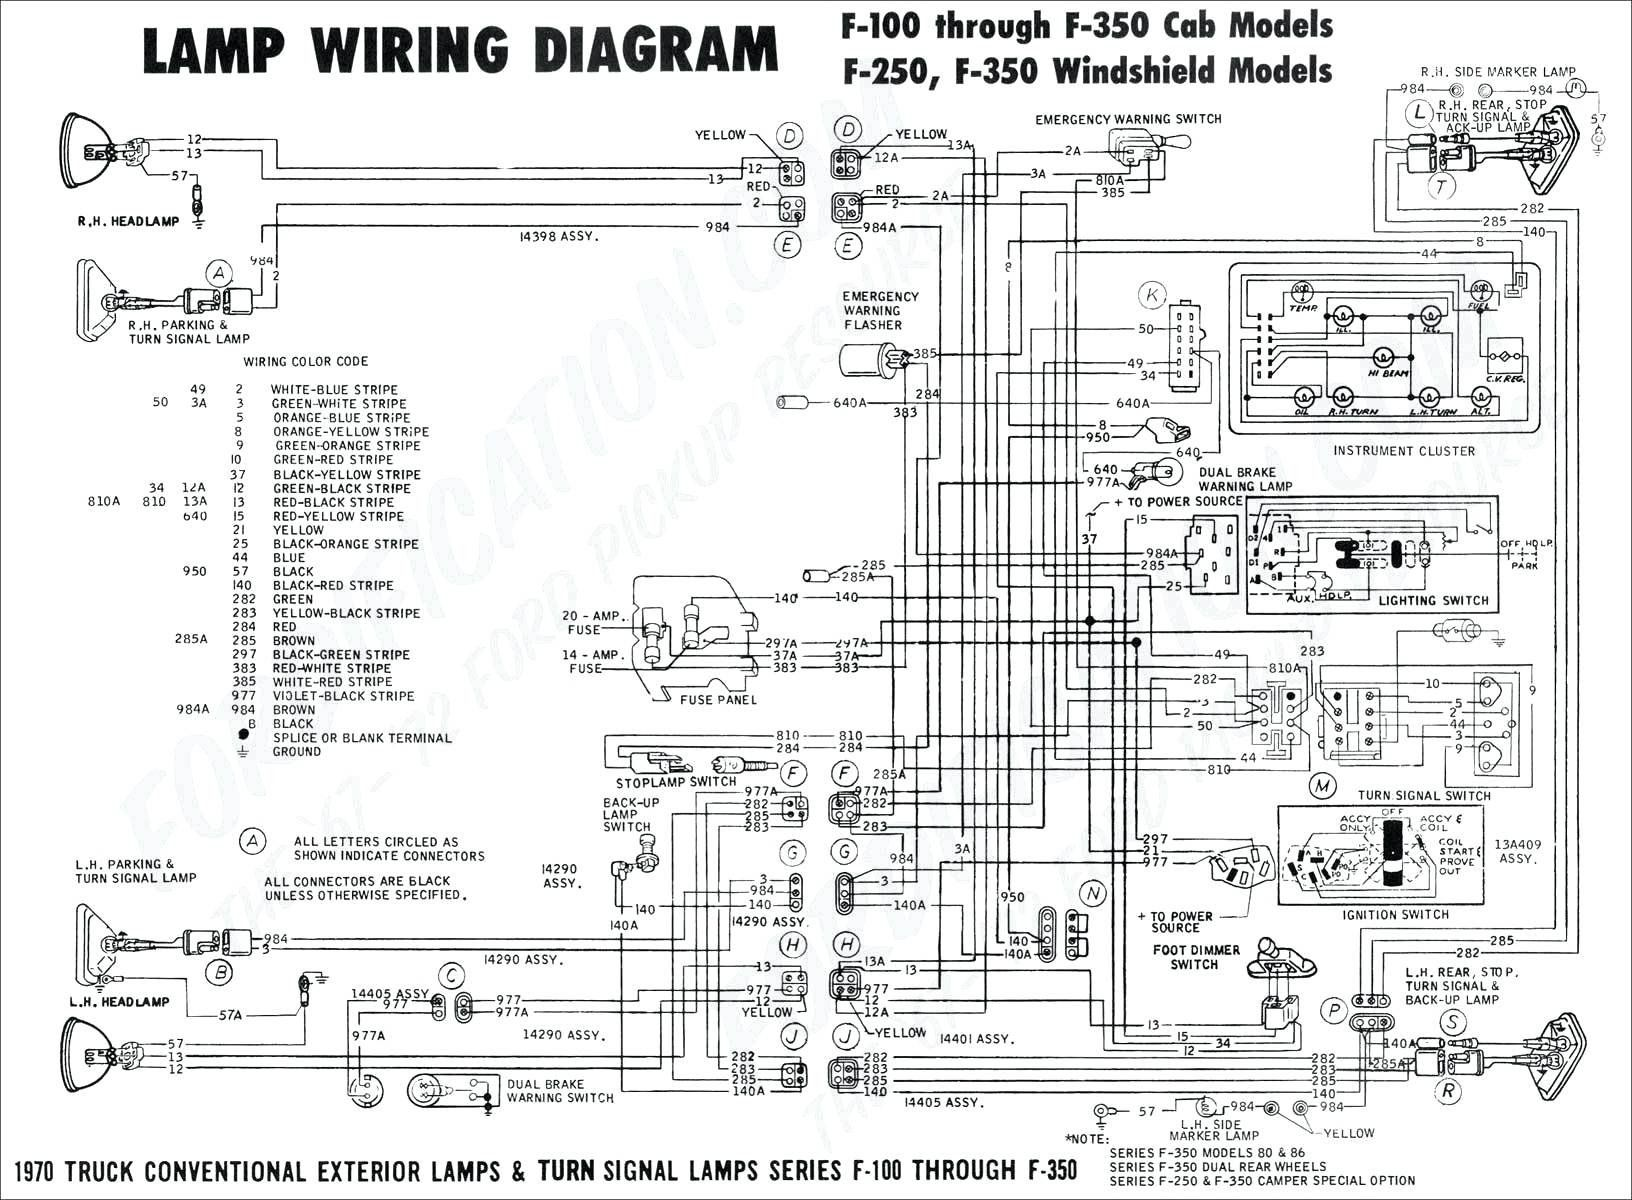 1973 ford f 250 ignition switch wiring diagram nc 7635  ford wiring color code chart moreover ford f 350 wiring  chart moreover ford f 350 wiring